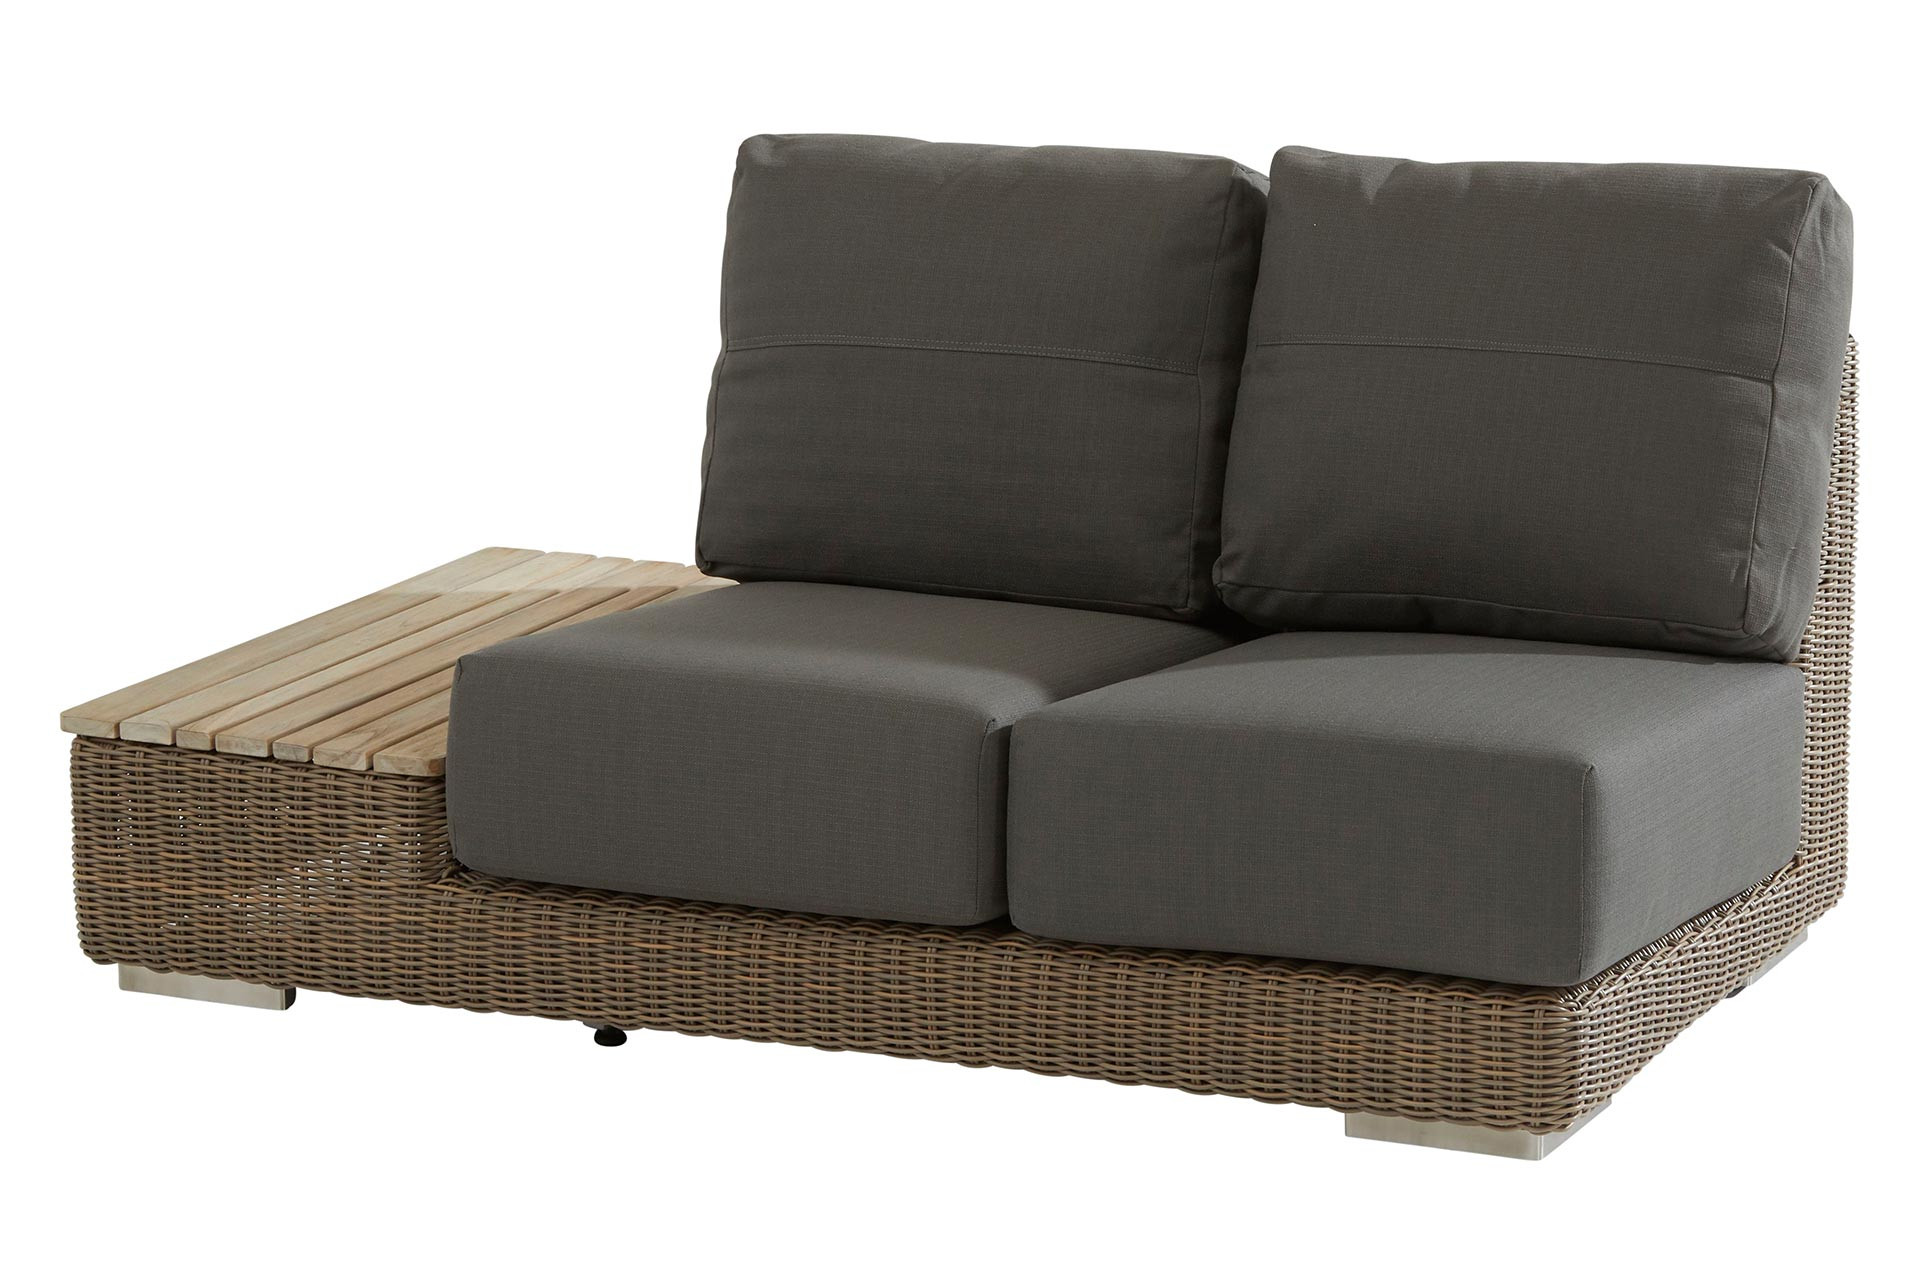 Kingston modular 2 seater right island teak with 4 cushions